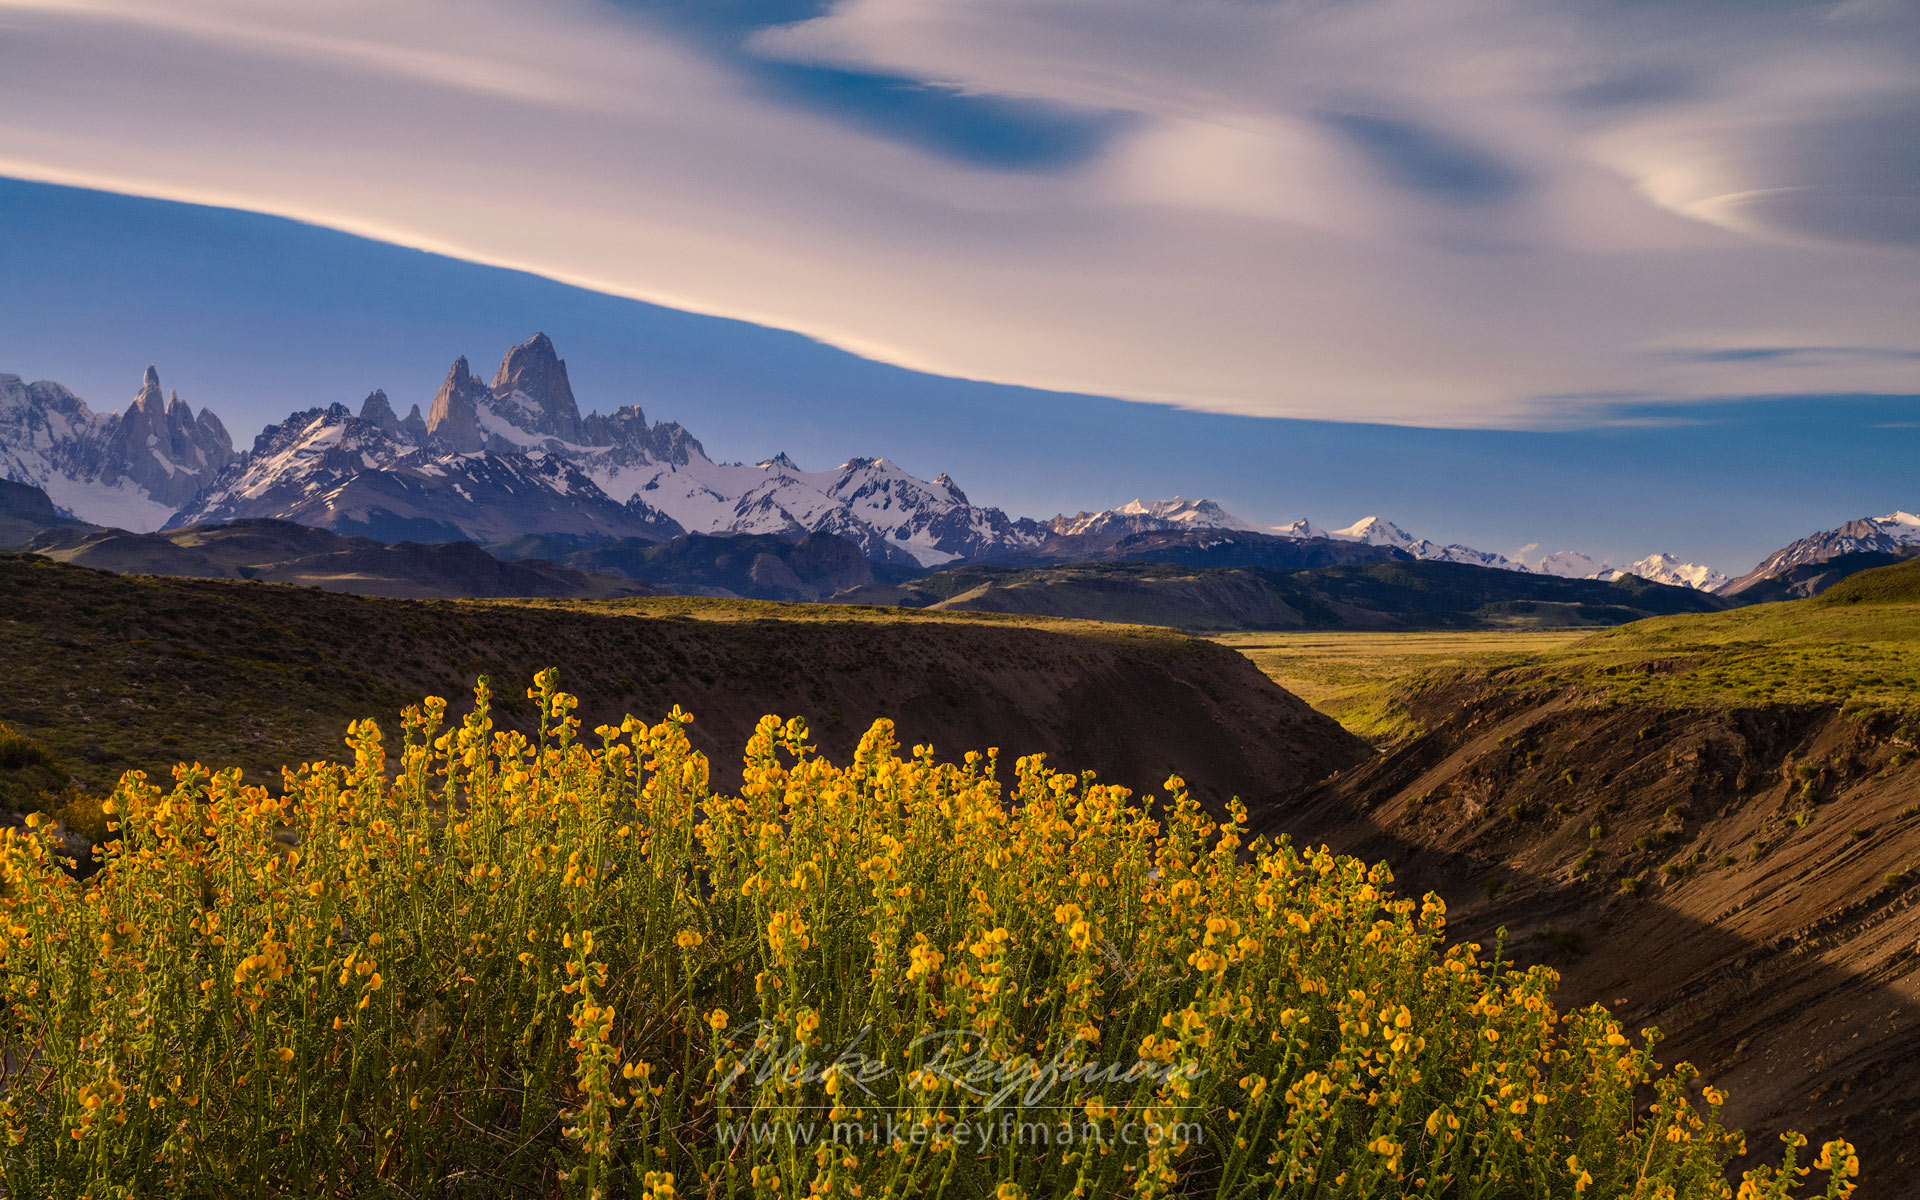 Patagonia splines. Native to Patagonia Paramela flowers (Adesmia boronioides) on Las Vueltas River canyon overlook. Fitzroy and Cerro Torre massifs on the background.   - Fitzroy-Cerro-Torre-Perito-Moreno-Patagonia-Argentina - Mike Reyfman Photography